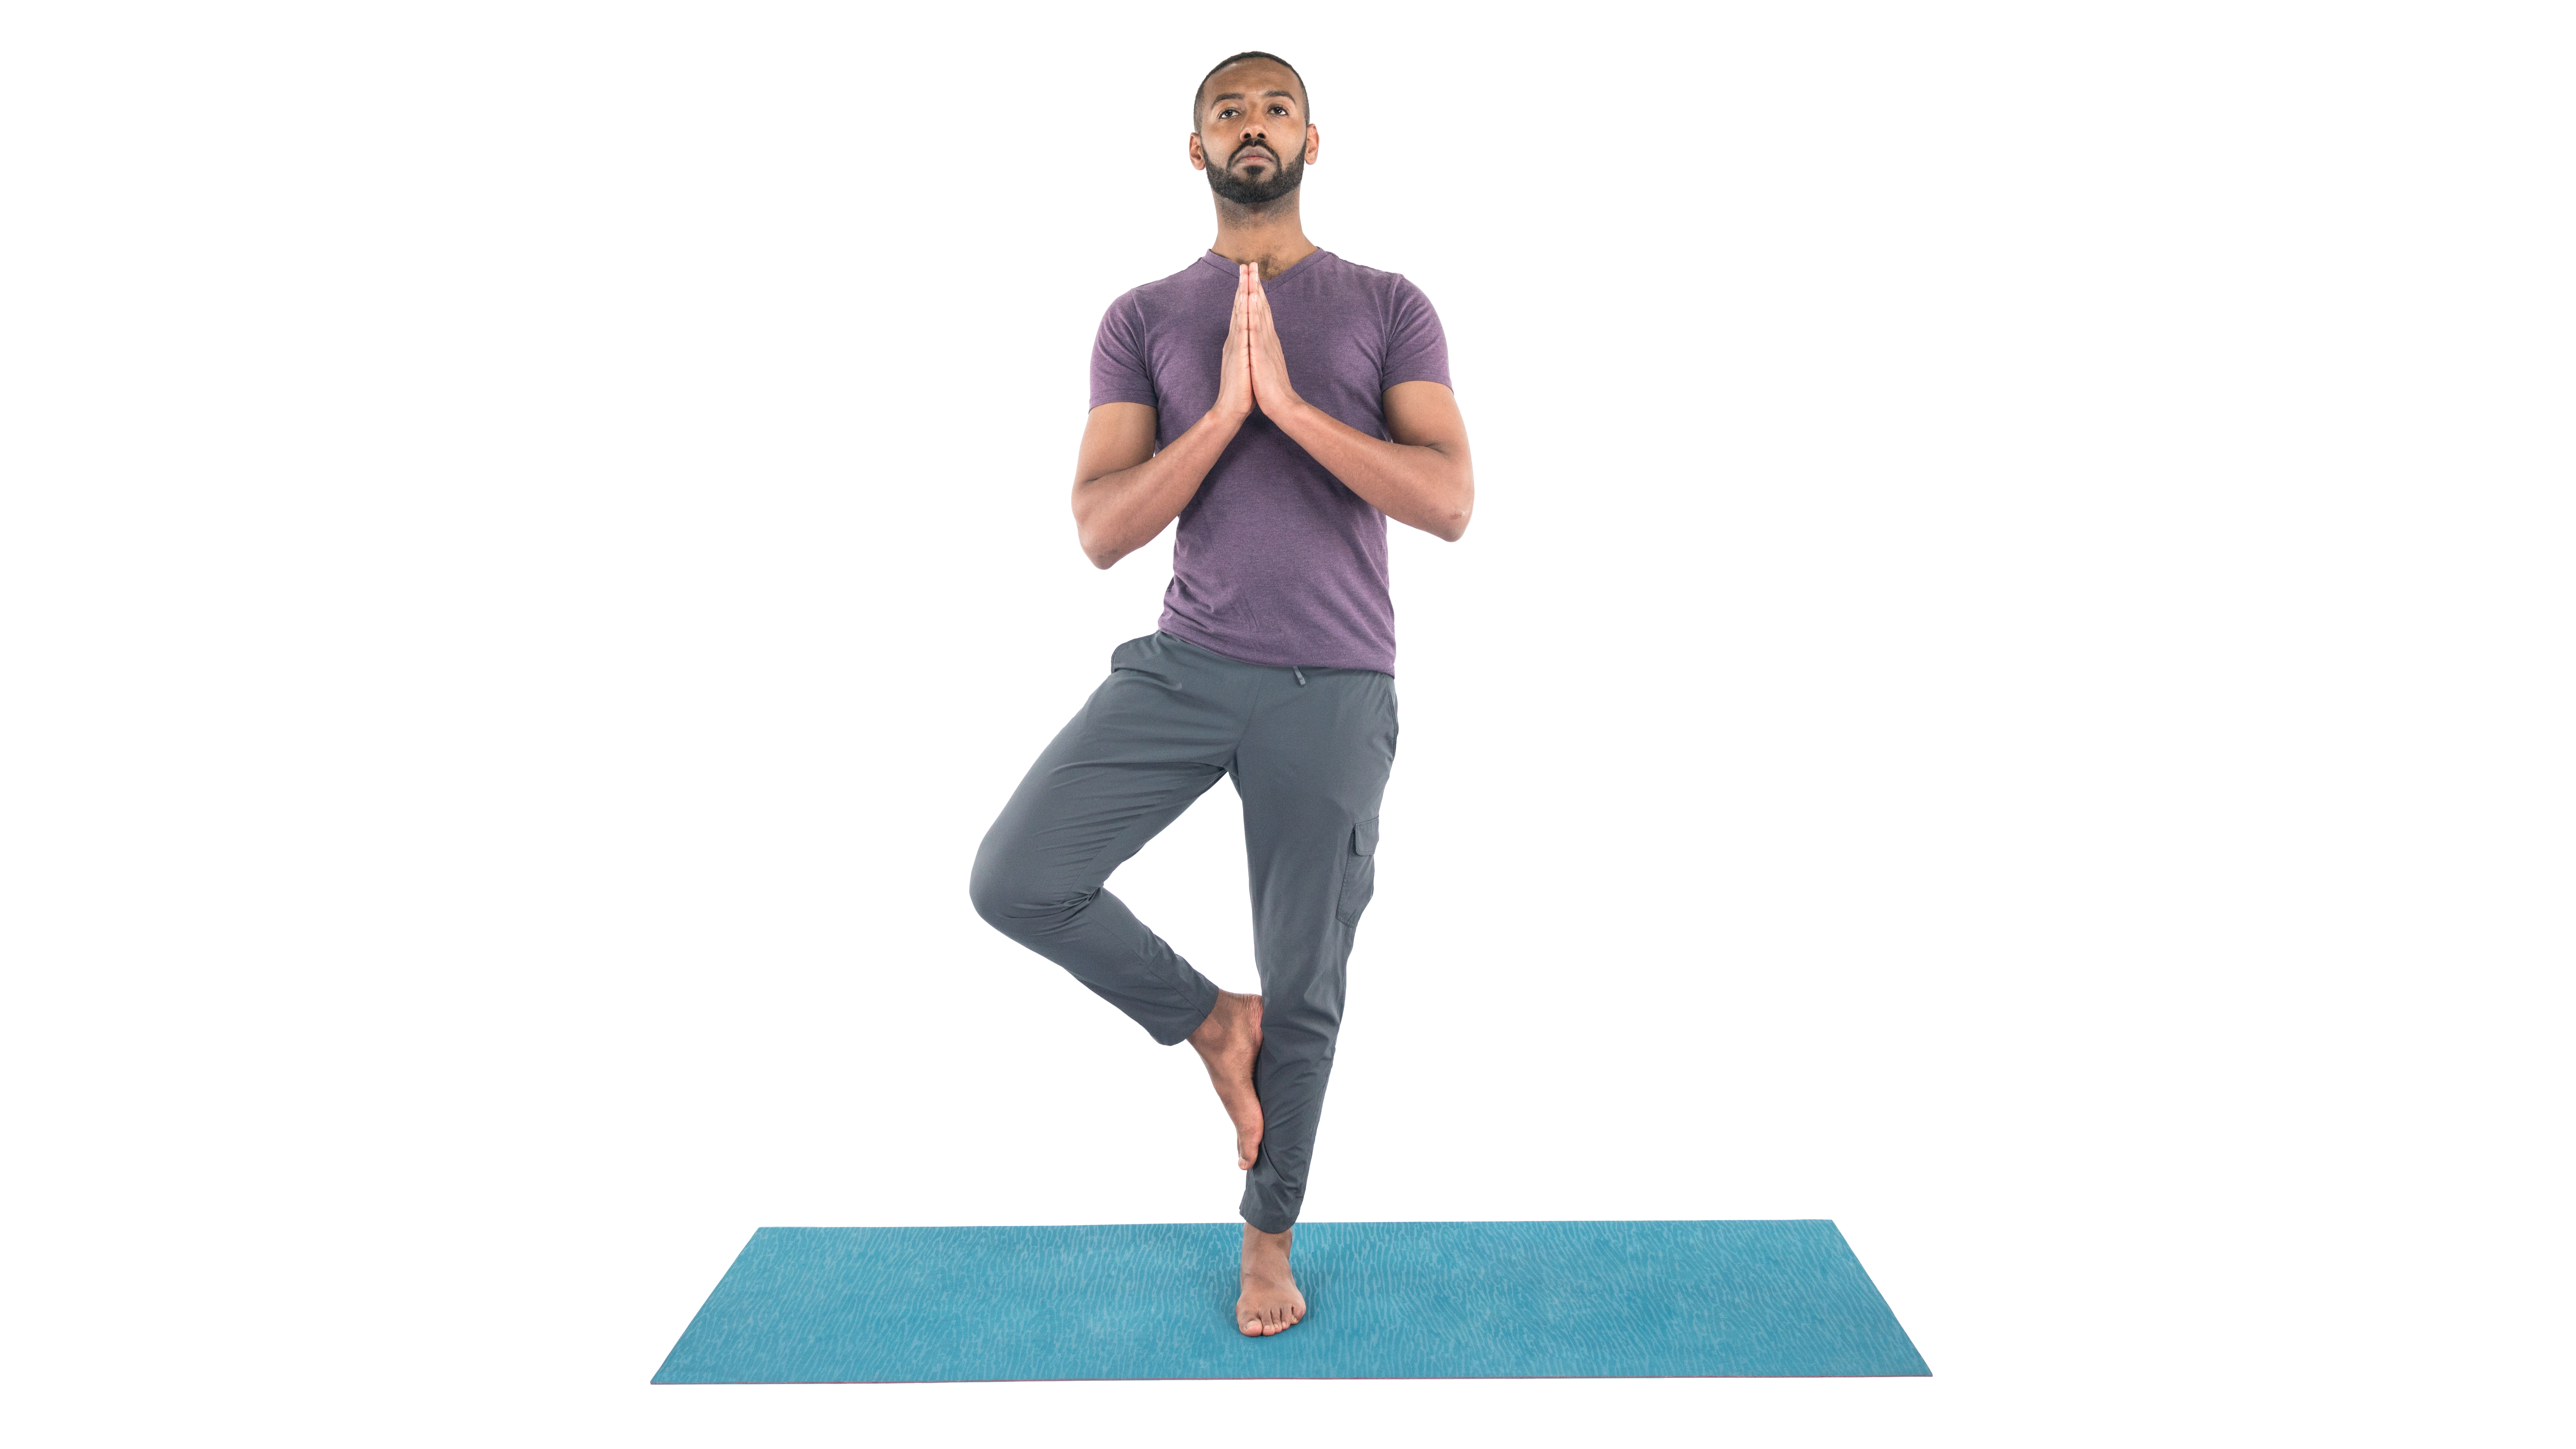 Vrksasana, Tree pose, tree pose variations, beginner's yoga, yoga everyday, yoga for developing greater interoception and proprioception